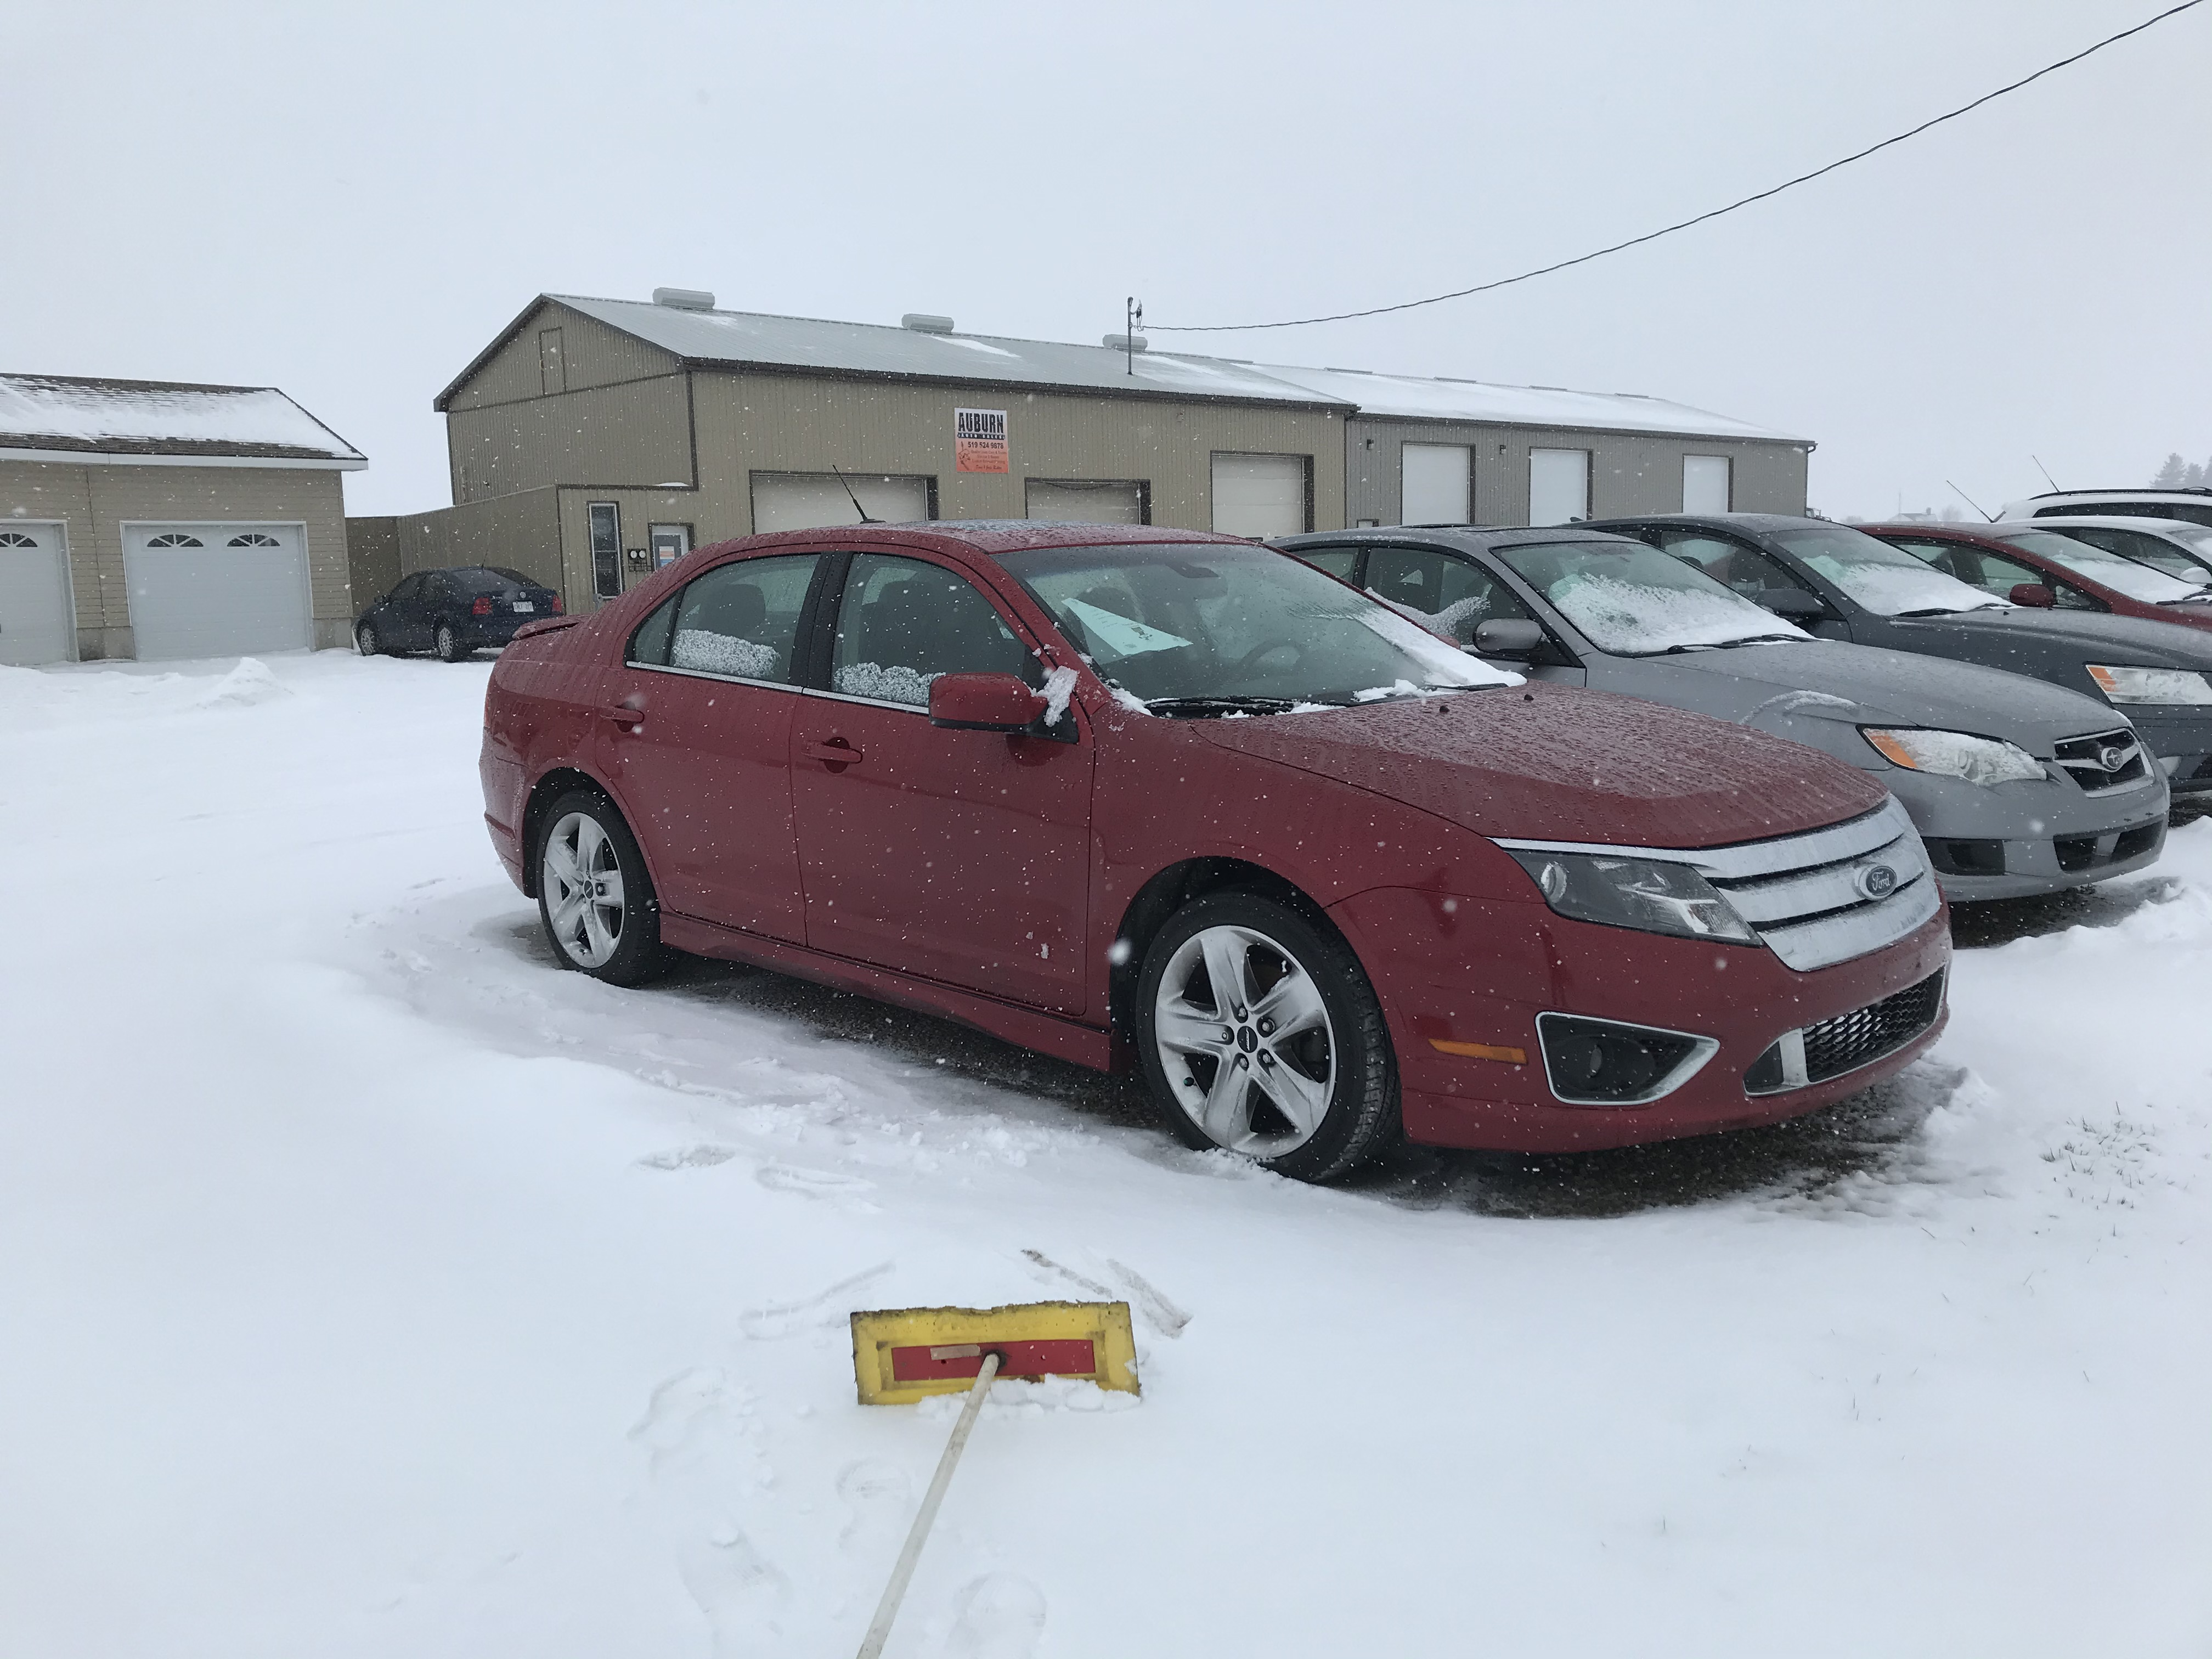 2011 Ford Fusion Sport 3.5 litre, automatic, loaded, leather, sunroof, navigation, AWD 138 723 km $6 495.00 + HST Certified